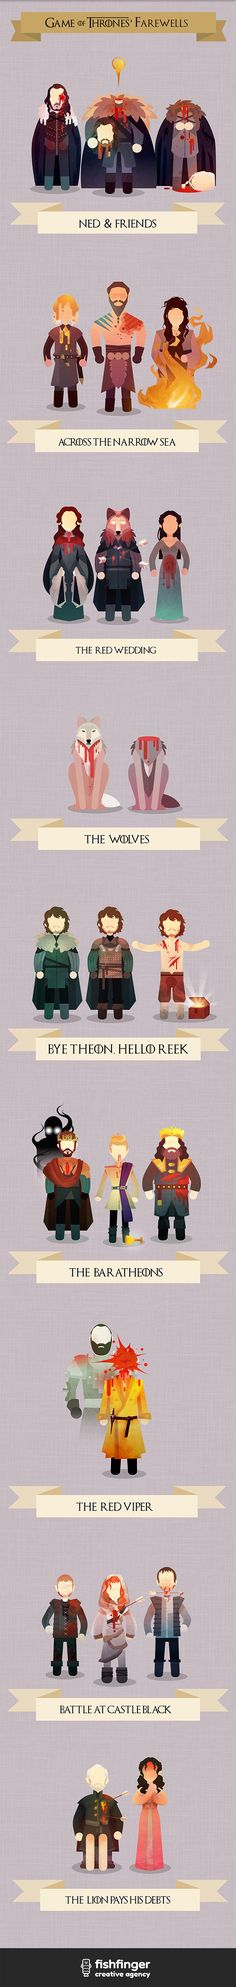 Game of Thrones Deaths Illustrated | Pic | Gear